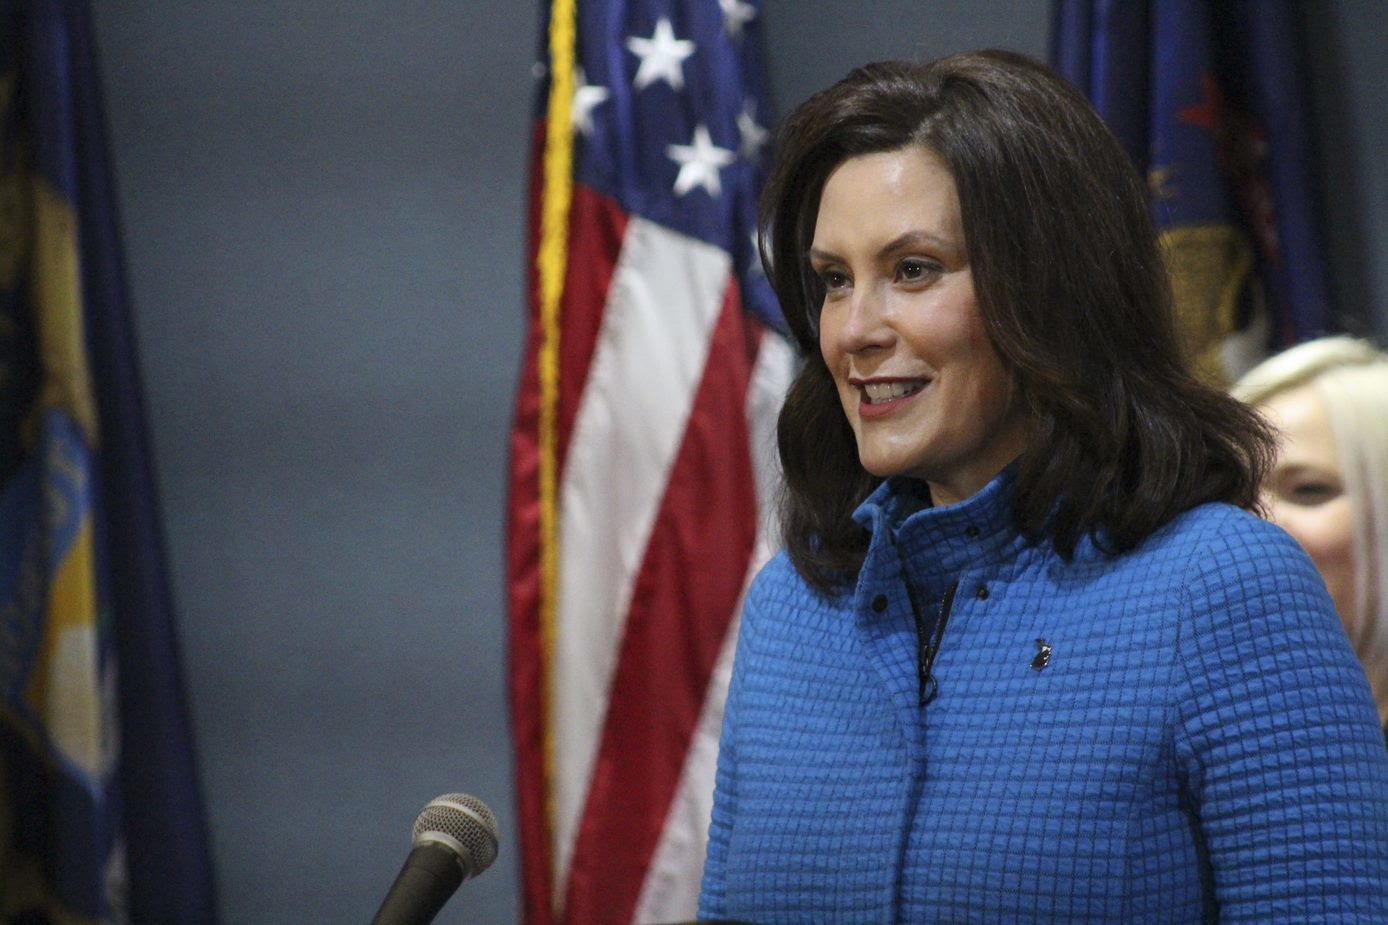 Michigan Gov. Whitmer Lifts Stay-at-Home Order as Virus Declines